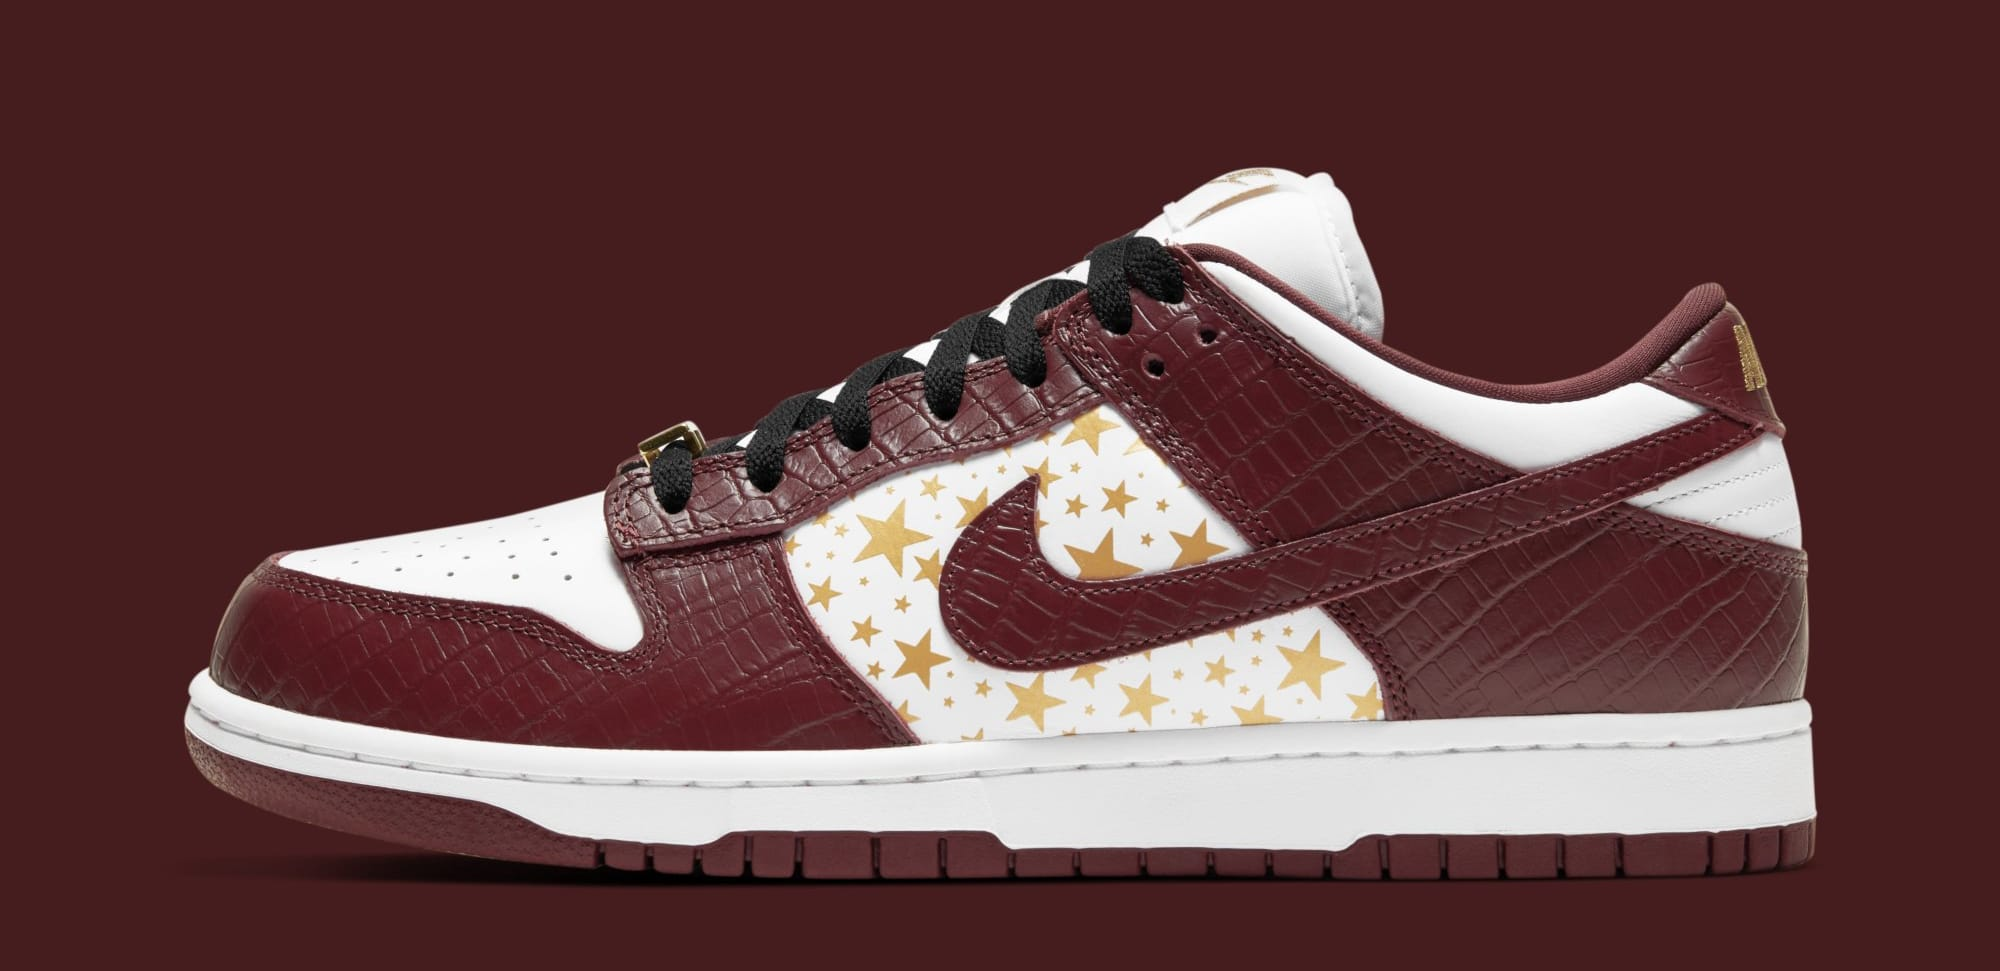 Supreme x Nike SB Dunk Low 'Barkroot Brown' DH3228-103 (Lateral)